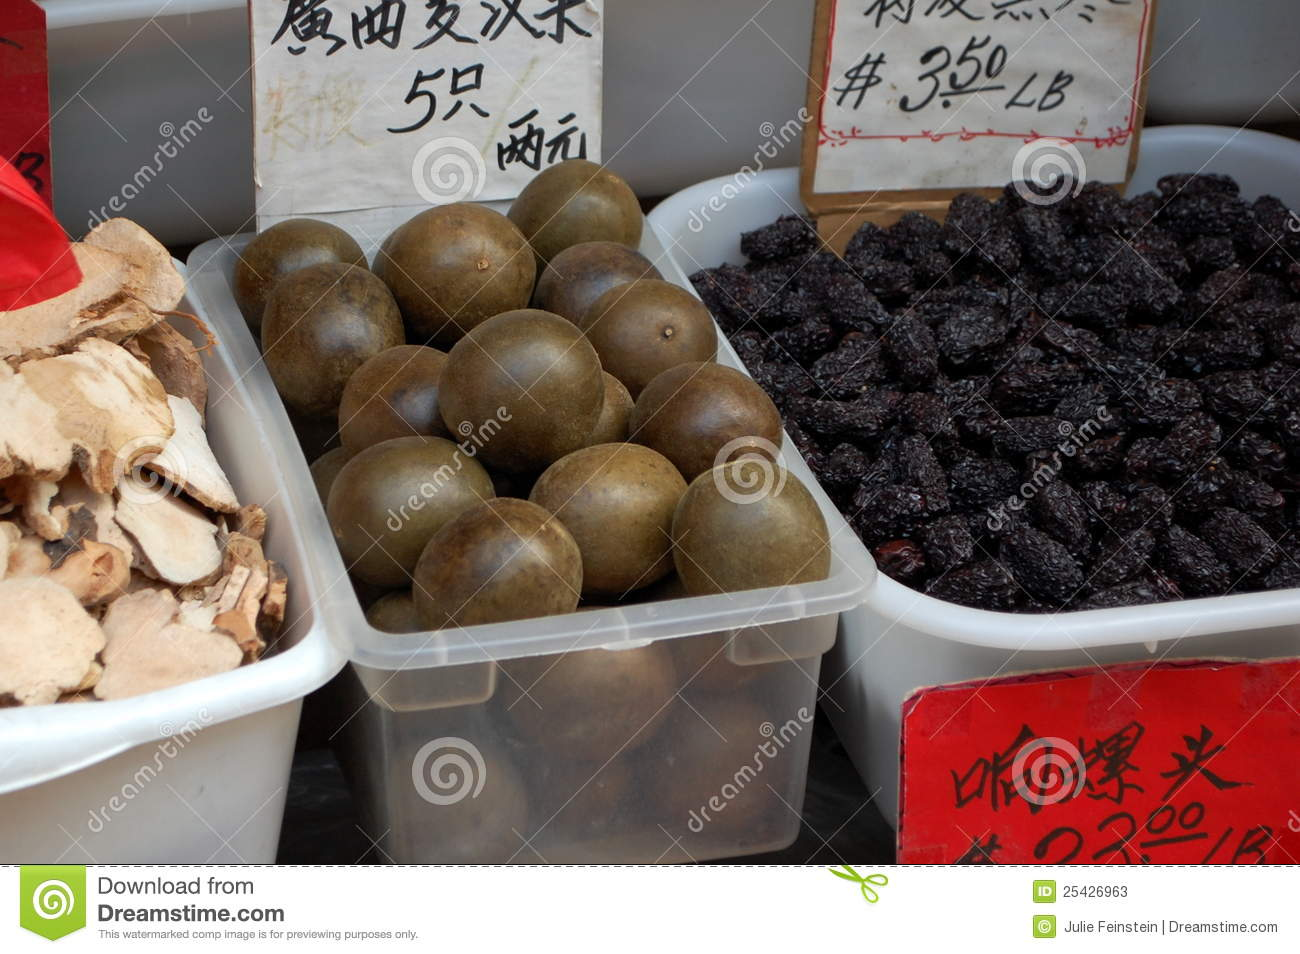 Chinese food ingredients stock photos image 25426963 for Asian cuisine ingredients